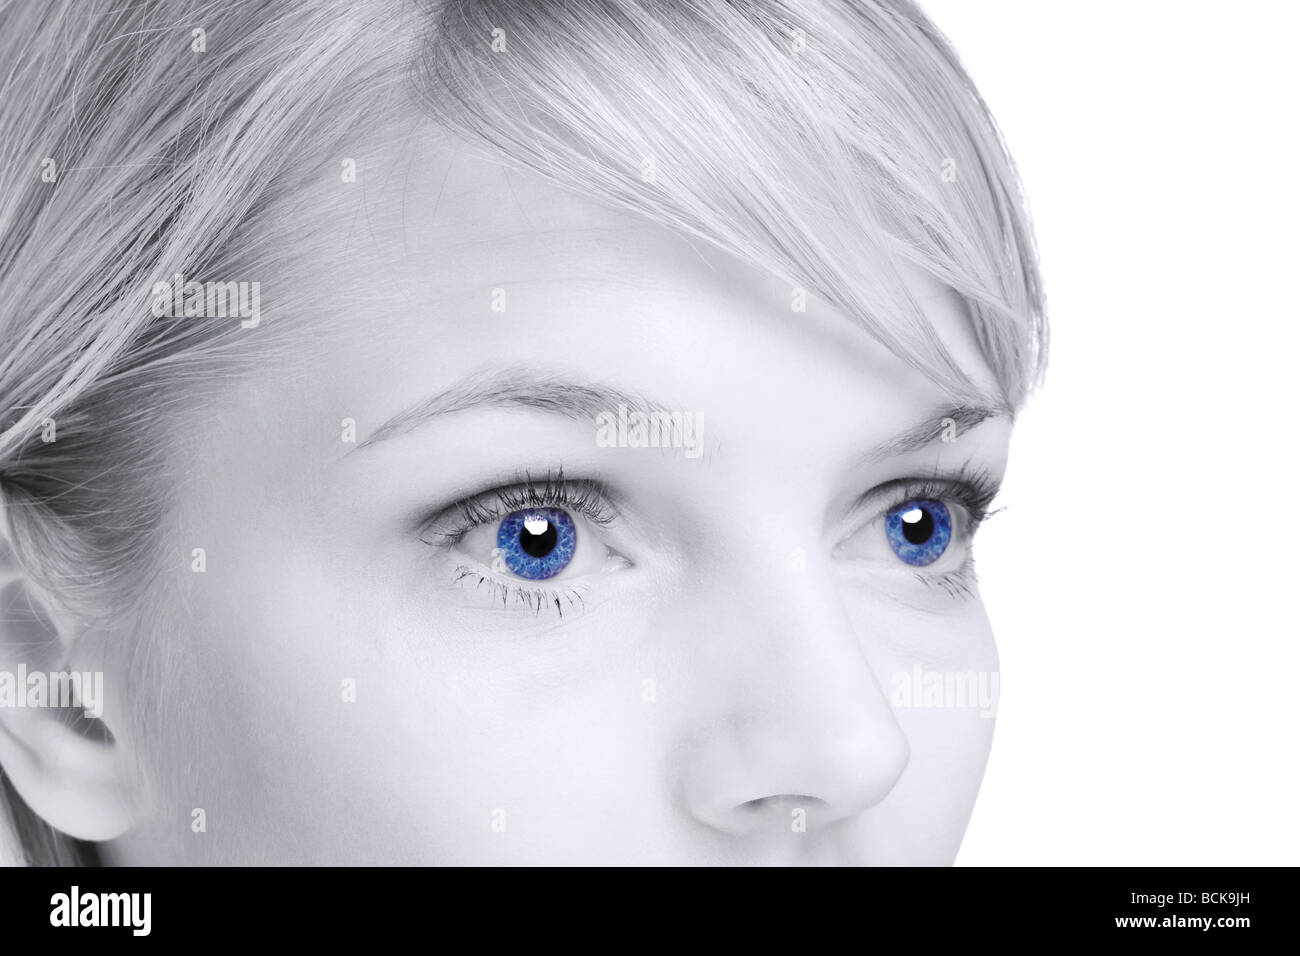 Abstract image of a blond woman with blue eyes - Stock Image